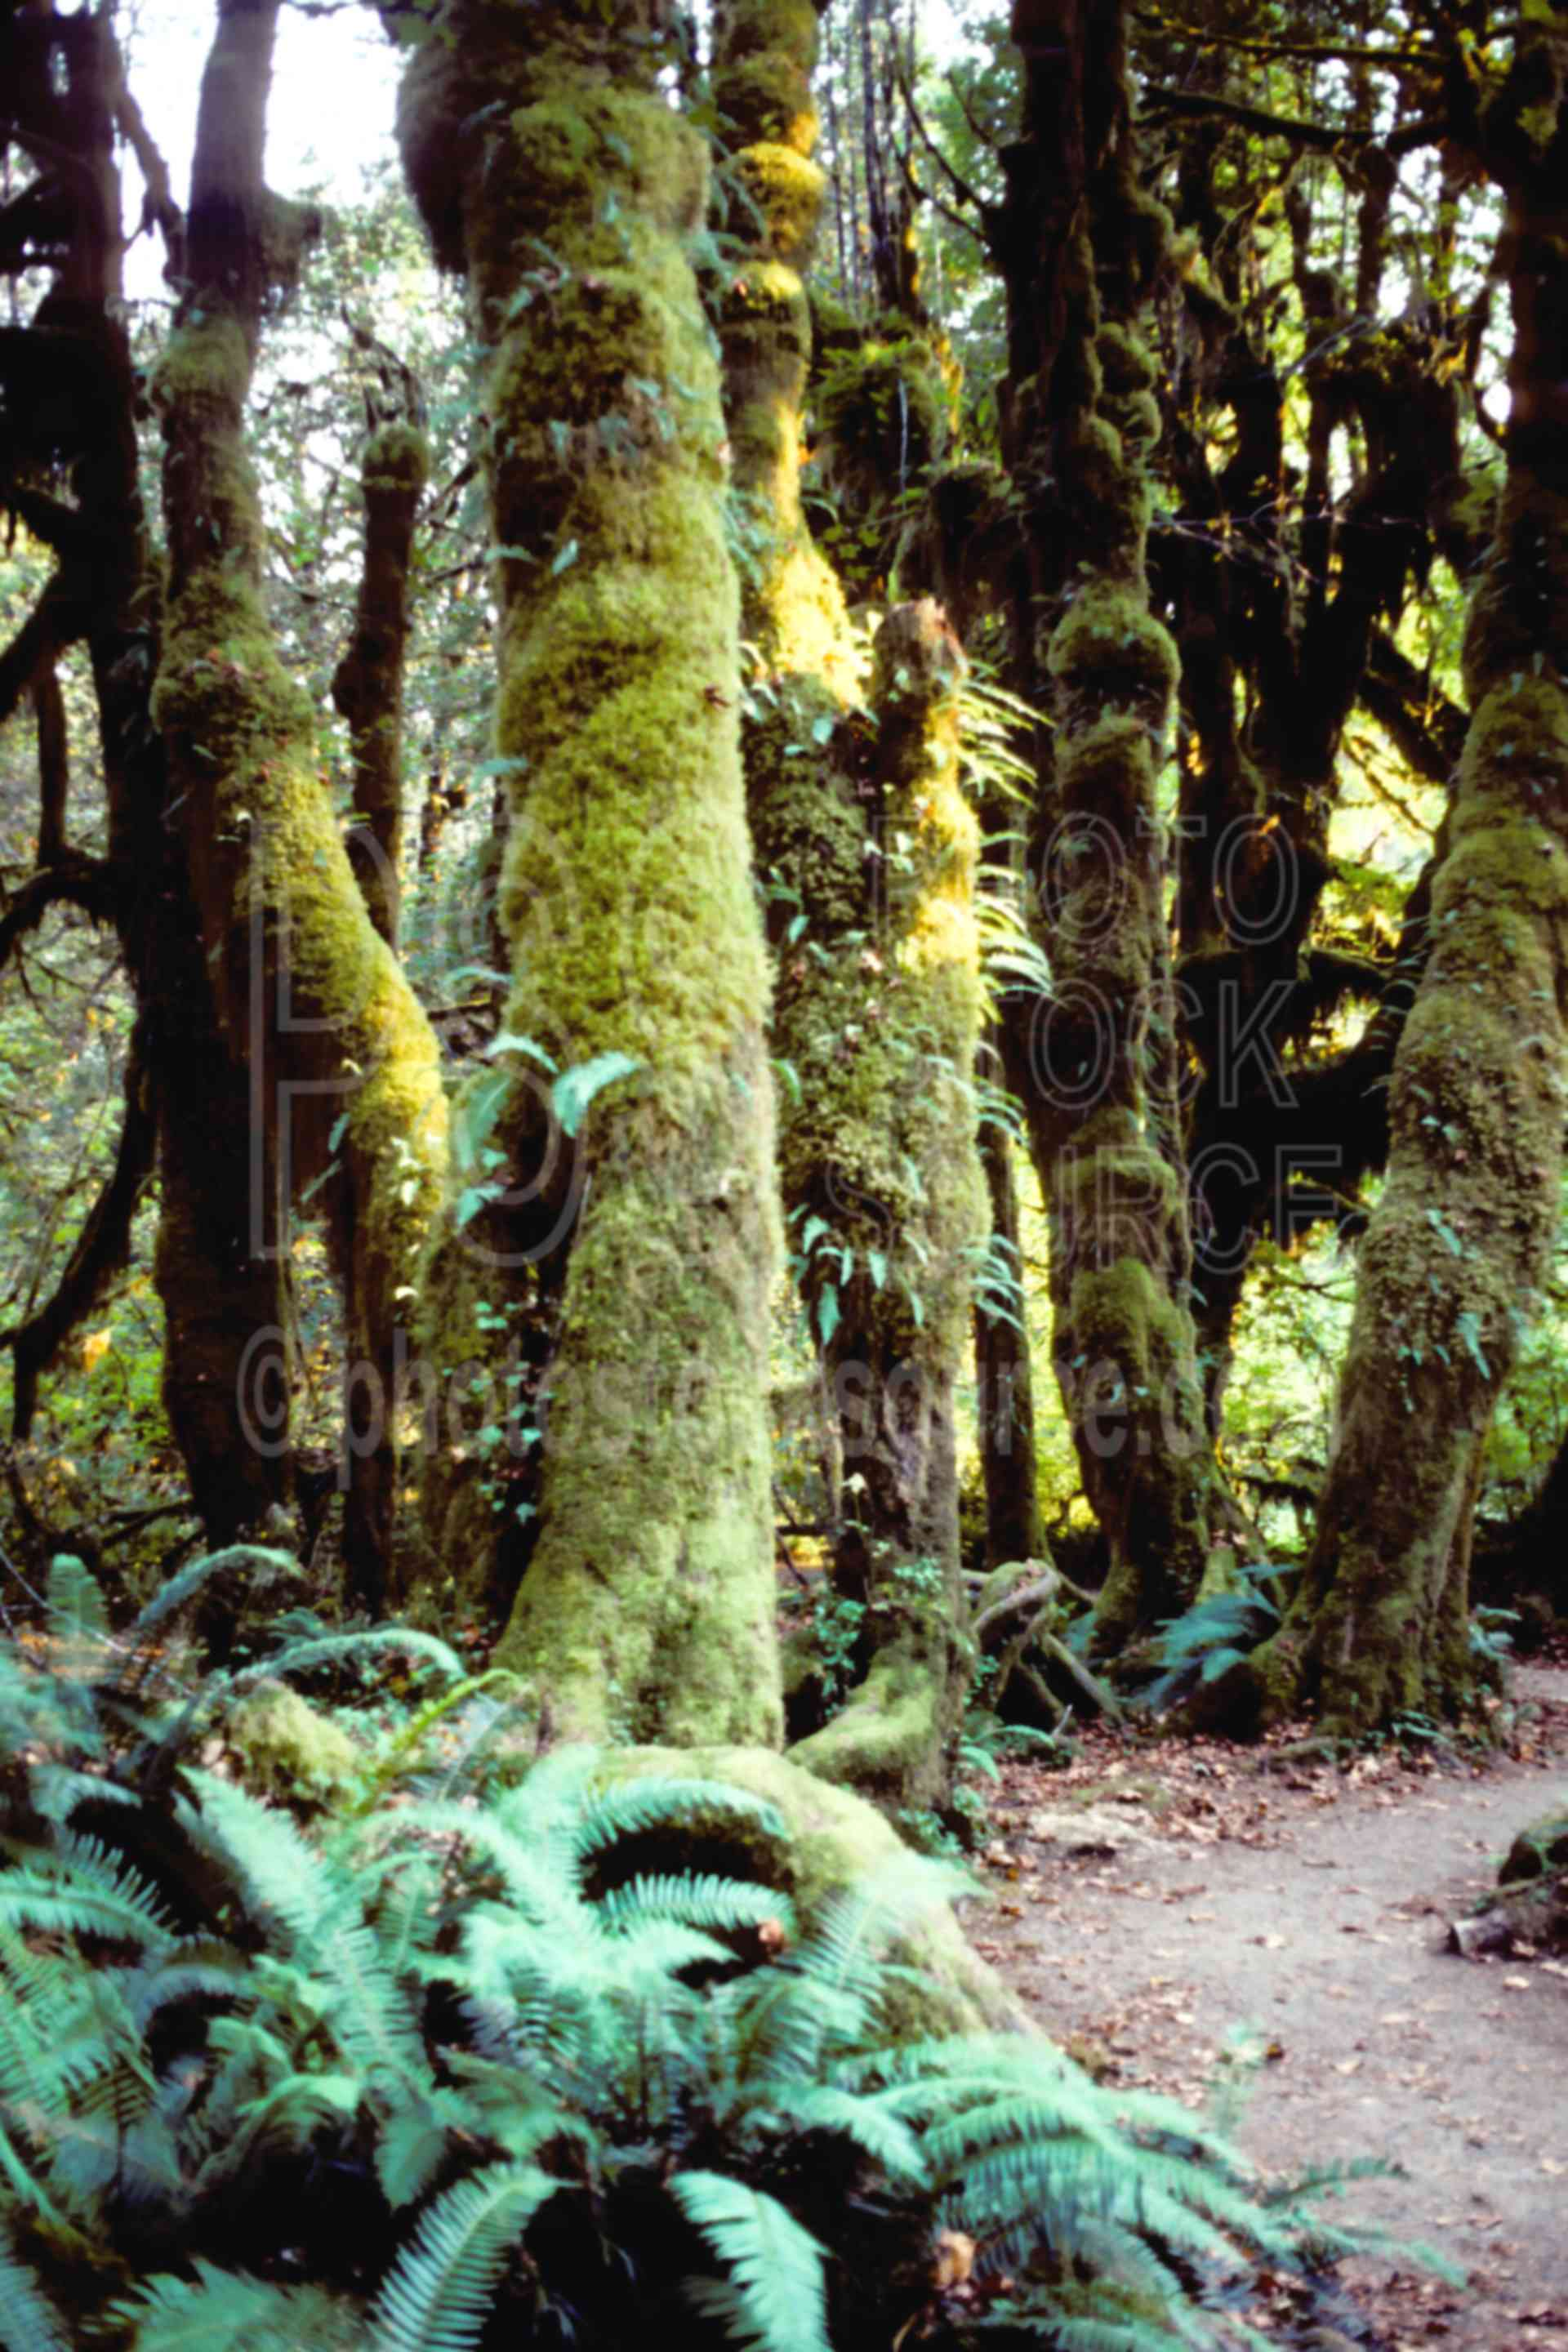 Rain Forest,hoh river,usas,forests,lakes rivers,nature